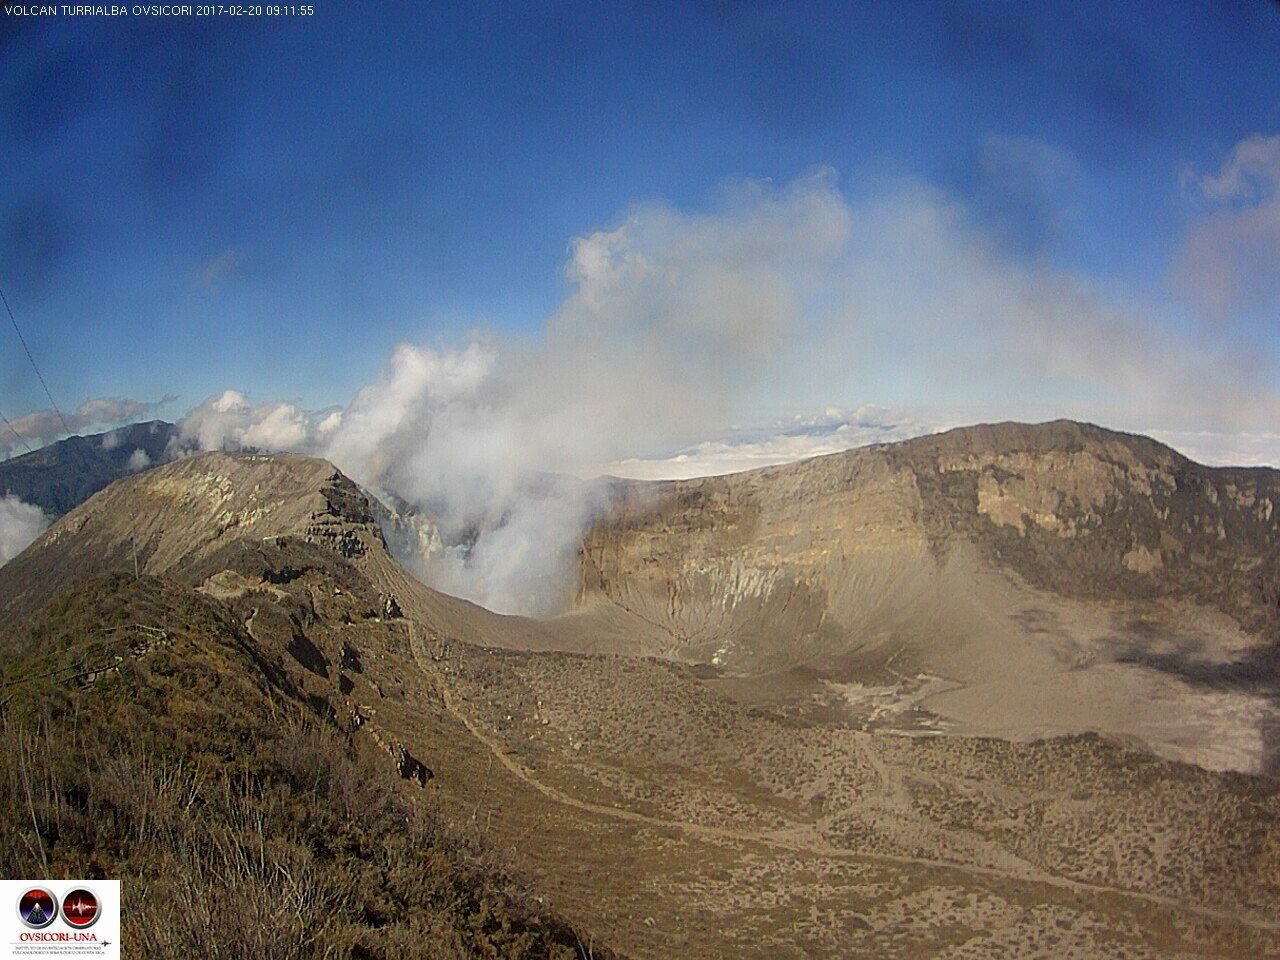 Turrialba - it took luck yesterday to have a nice view of the crater, in the clouds much of the day - webcam 20.02.2017 / 9:12 Ovsicori